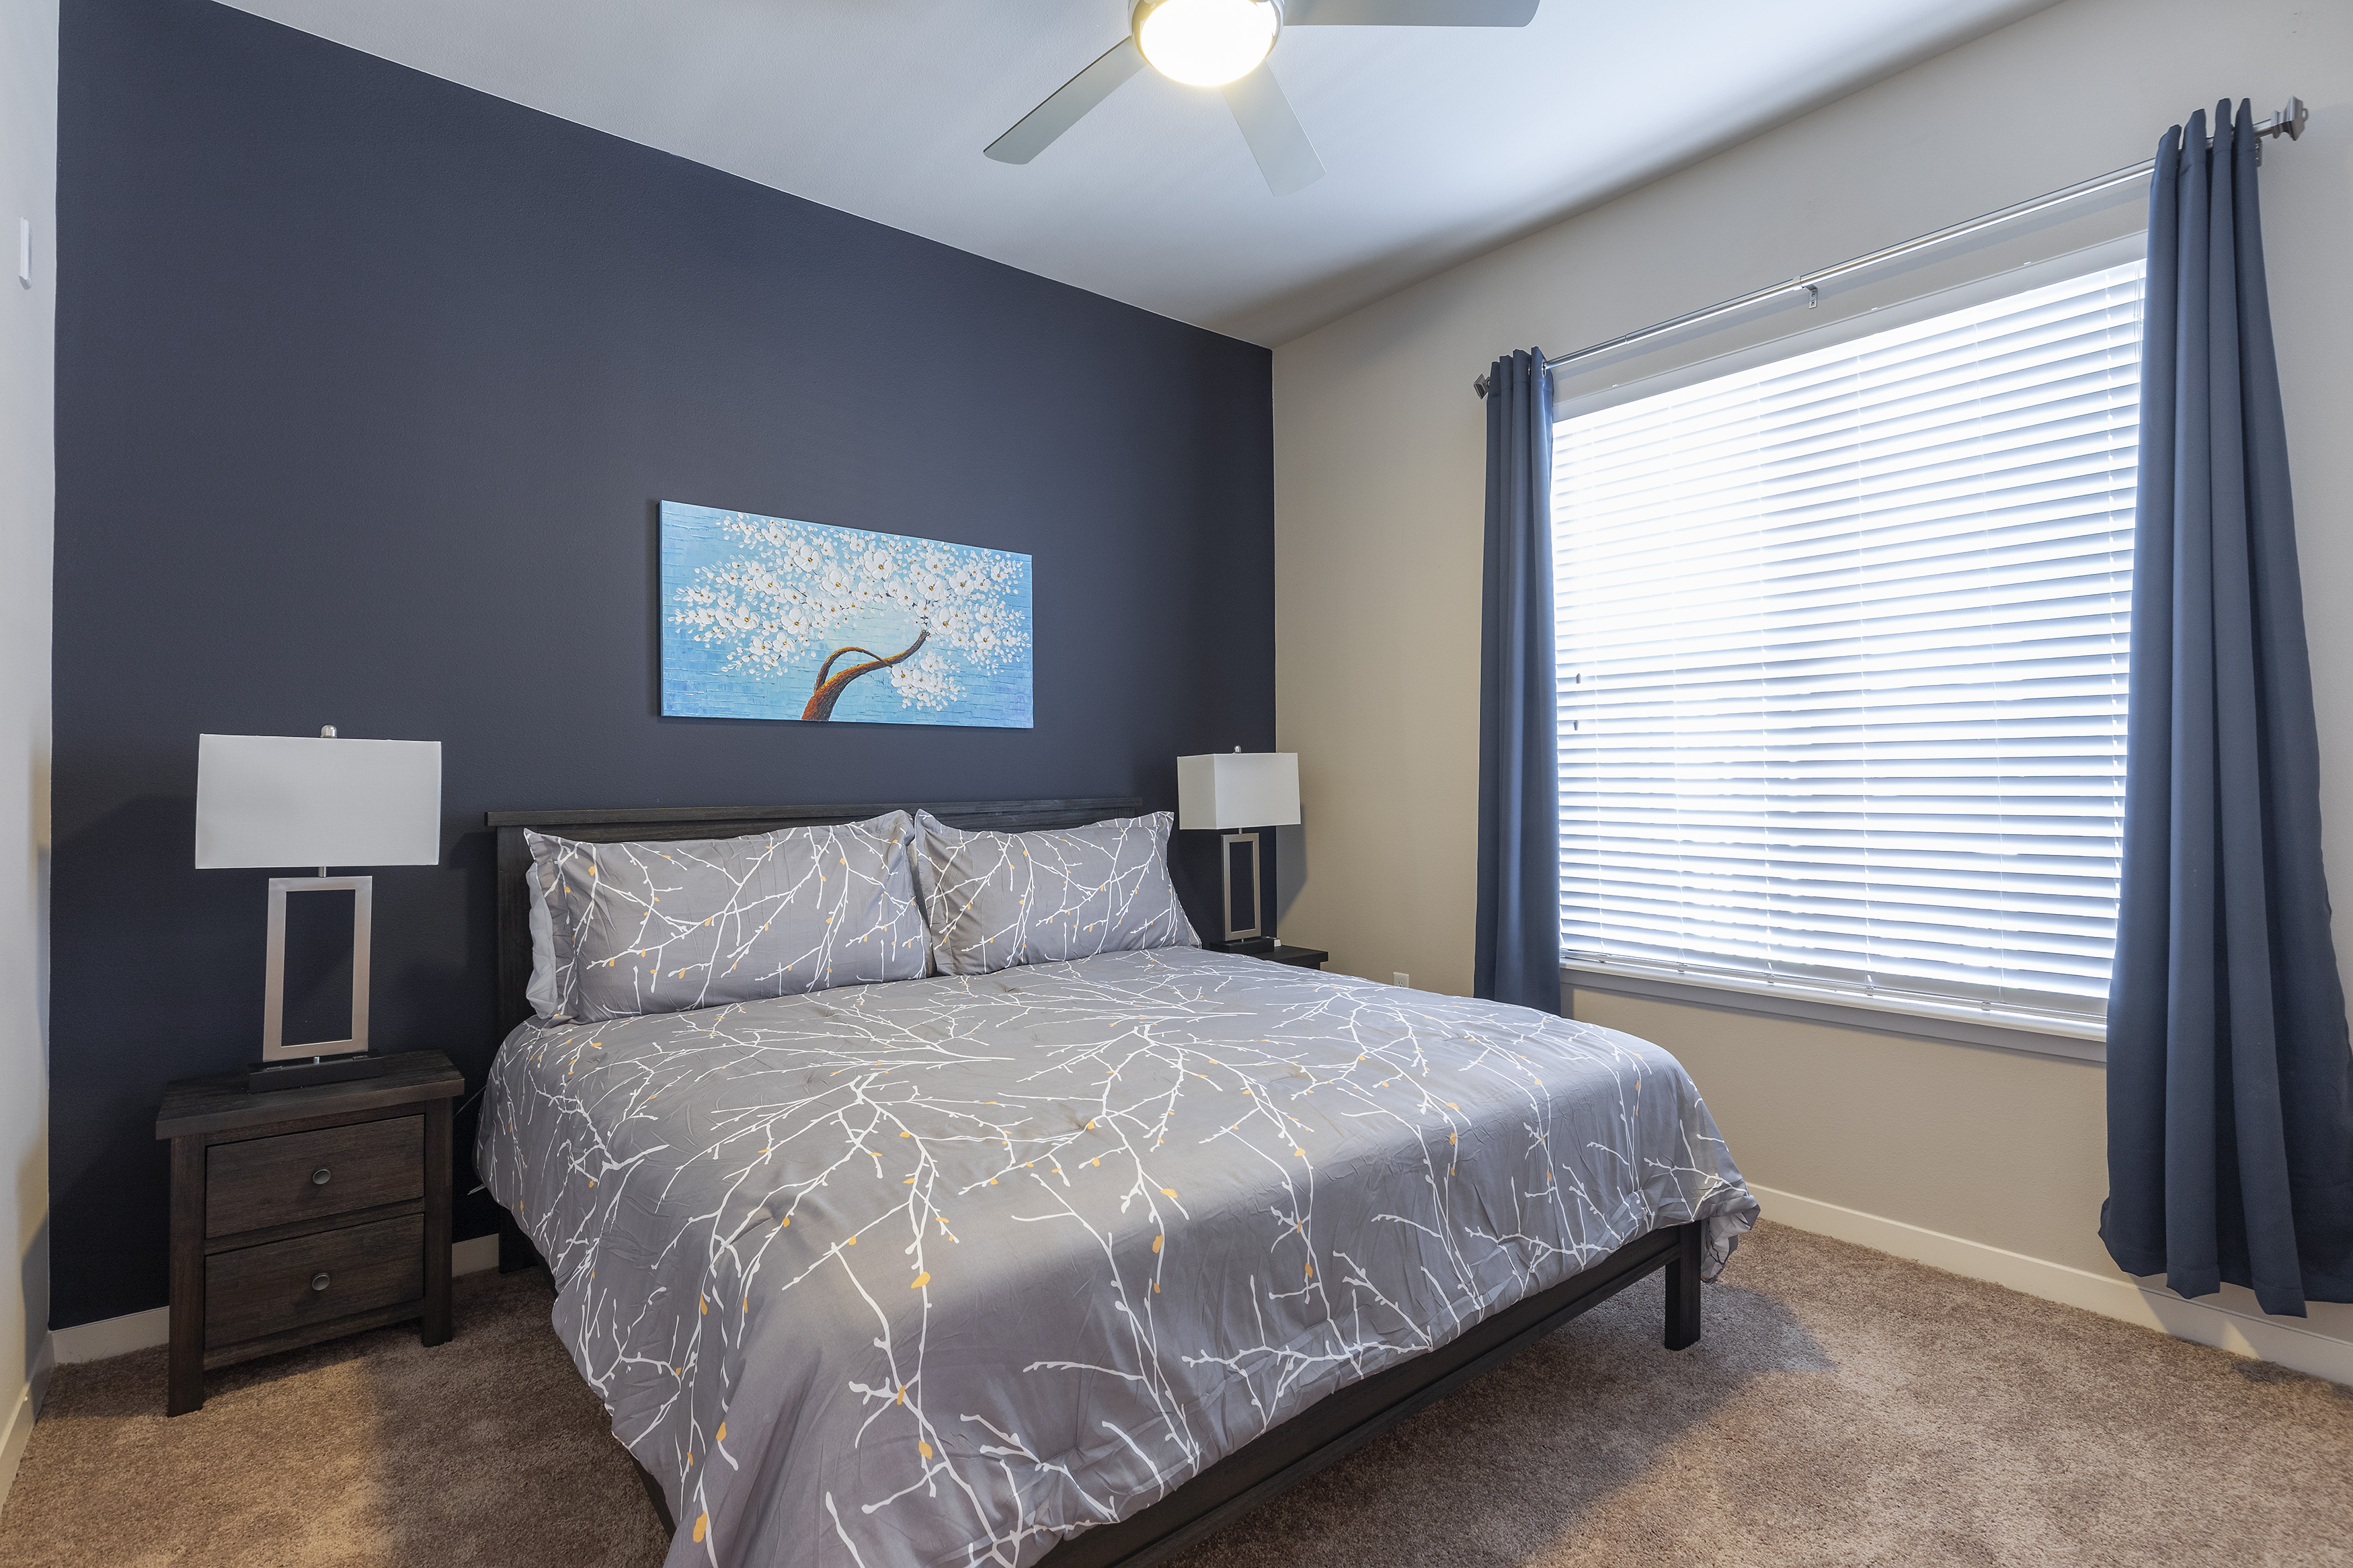 Apartment KING SIZE BED LUXURIOUS MED CENTER FULLY EQUIPPED CONDO photo 21441103